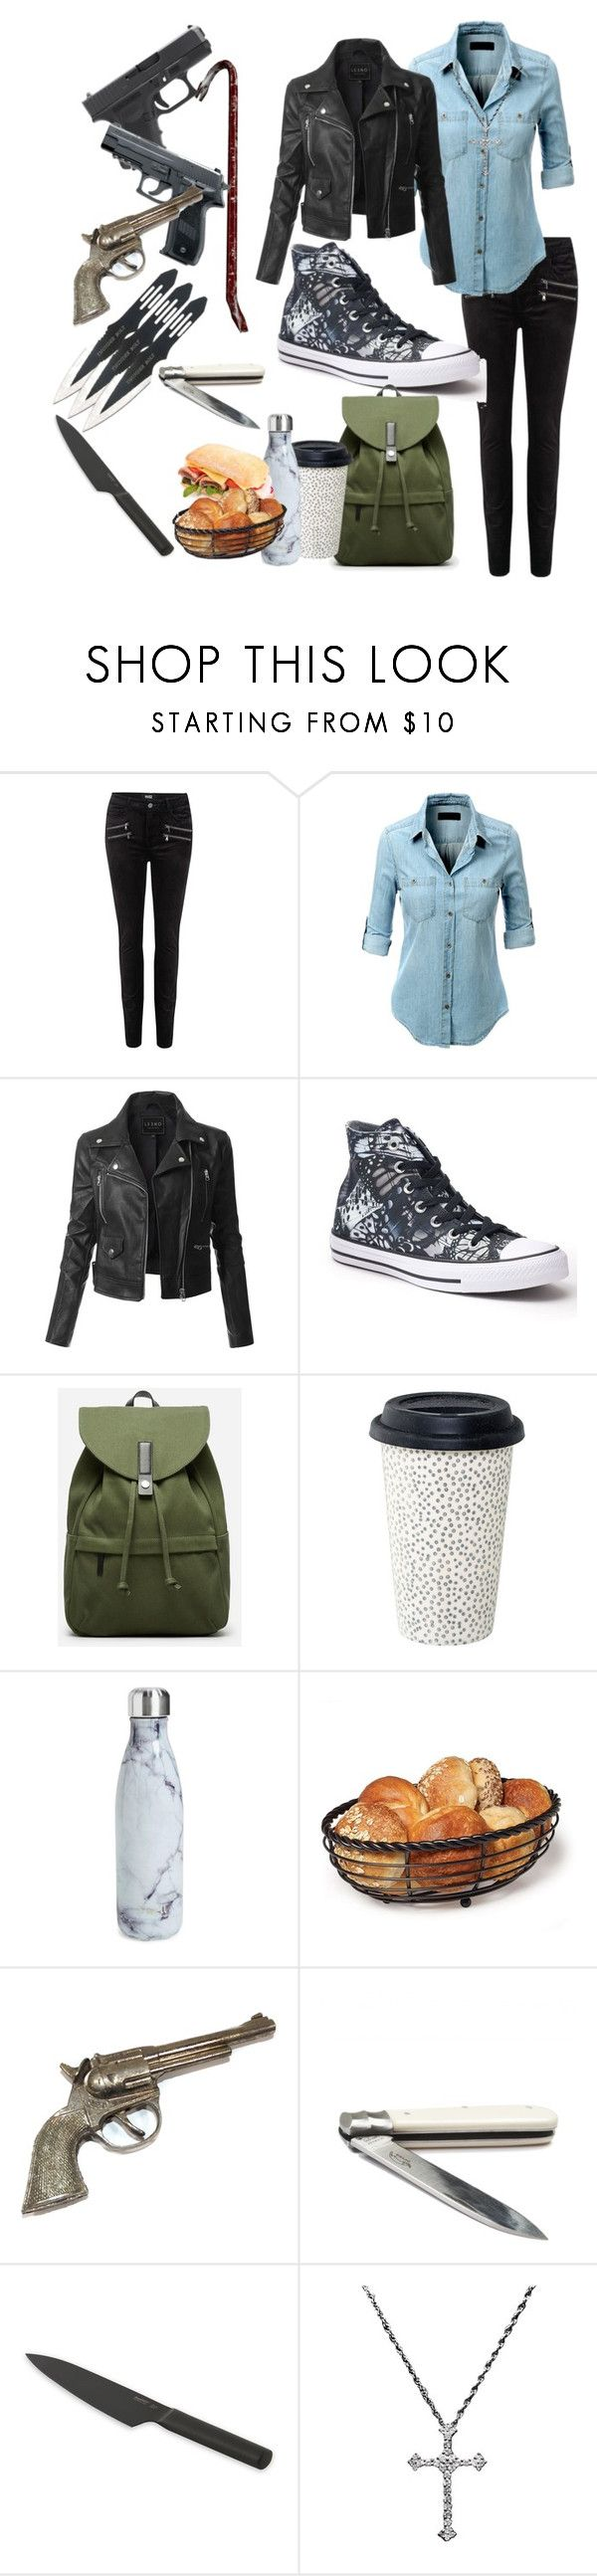 """Zombie Apocalypse Survival Set (contest entry)"" by microwavelord ❤ liked on Polyvore featuring Paige Denim, LE3NO, Converse, Everlane, S'well and BergHOFF"